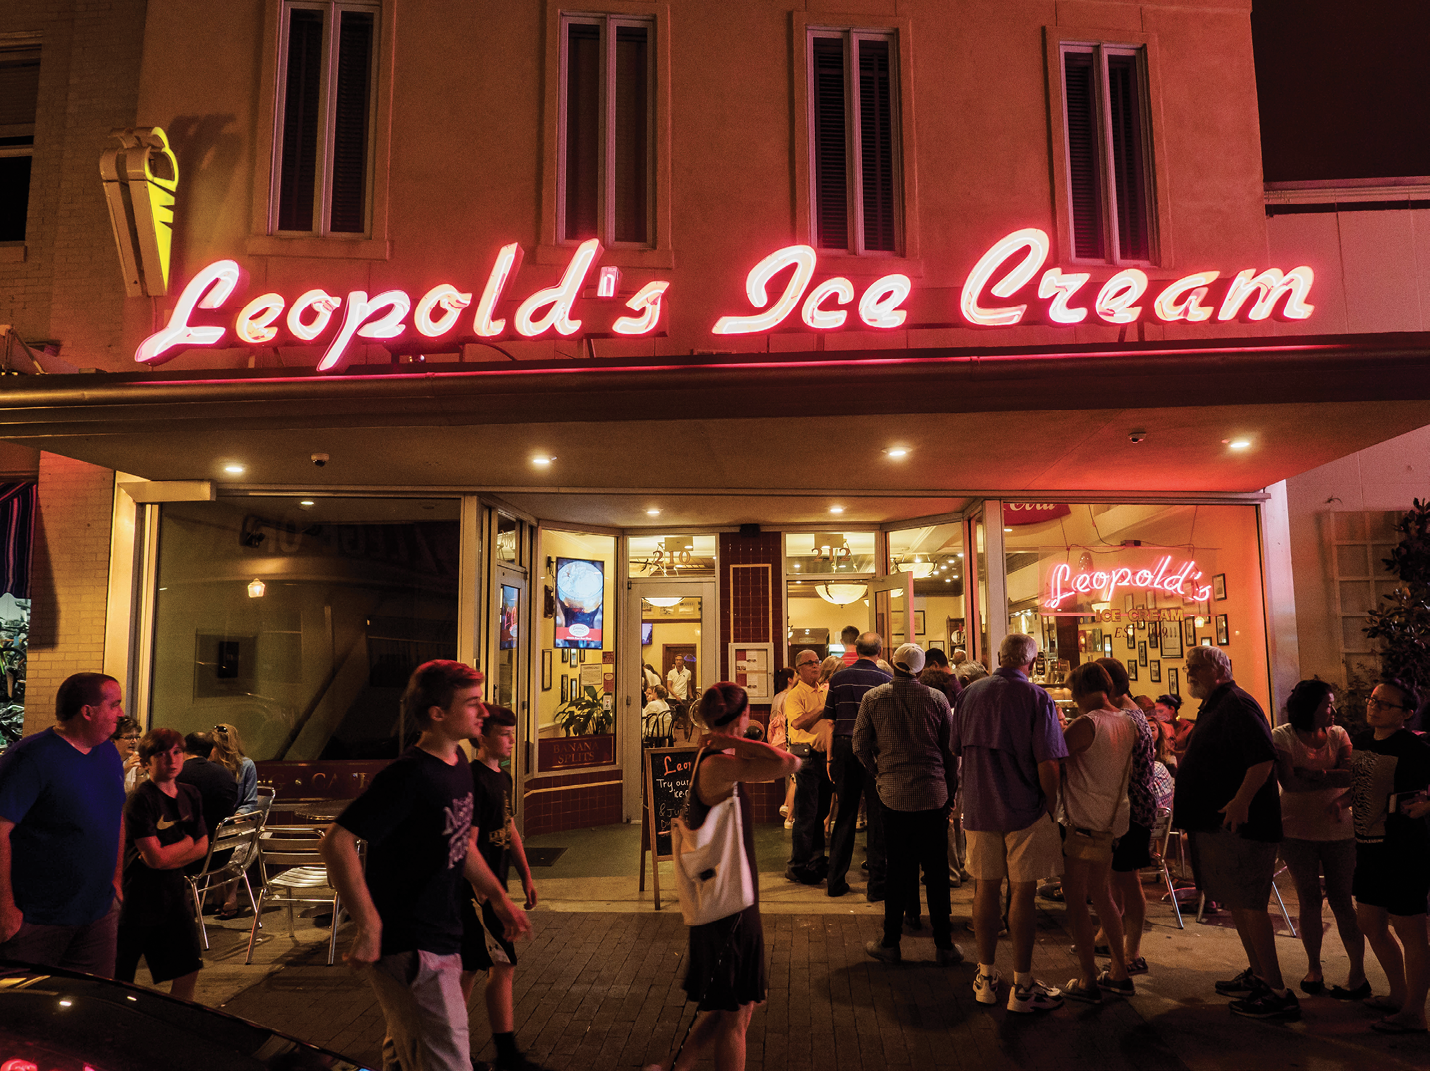 The after-dinner crowd queues up at Leopold's Ice Cream, which was established 98 years ago and stays open until midnight on weekends.